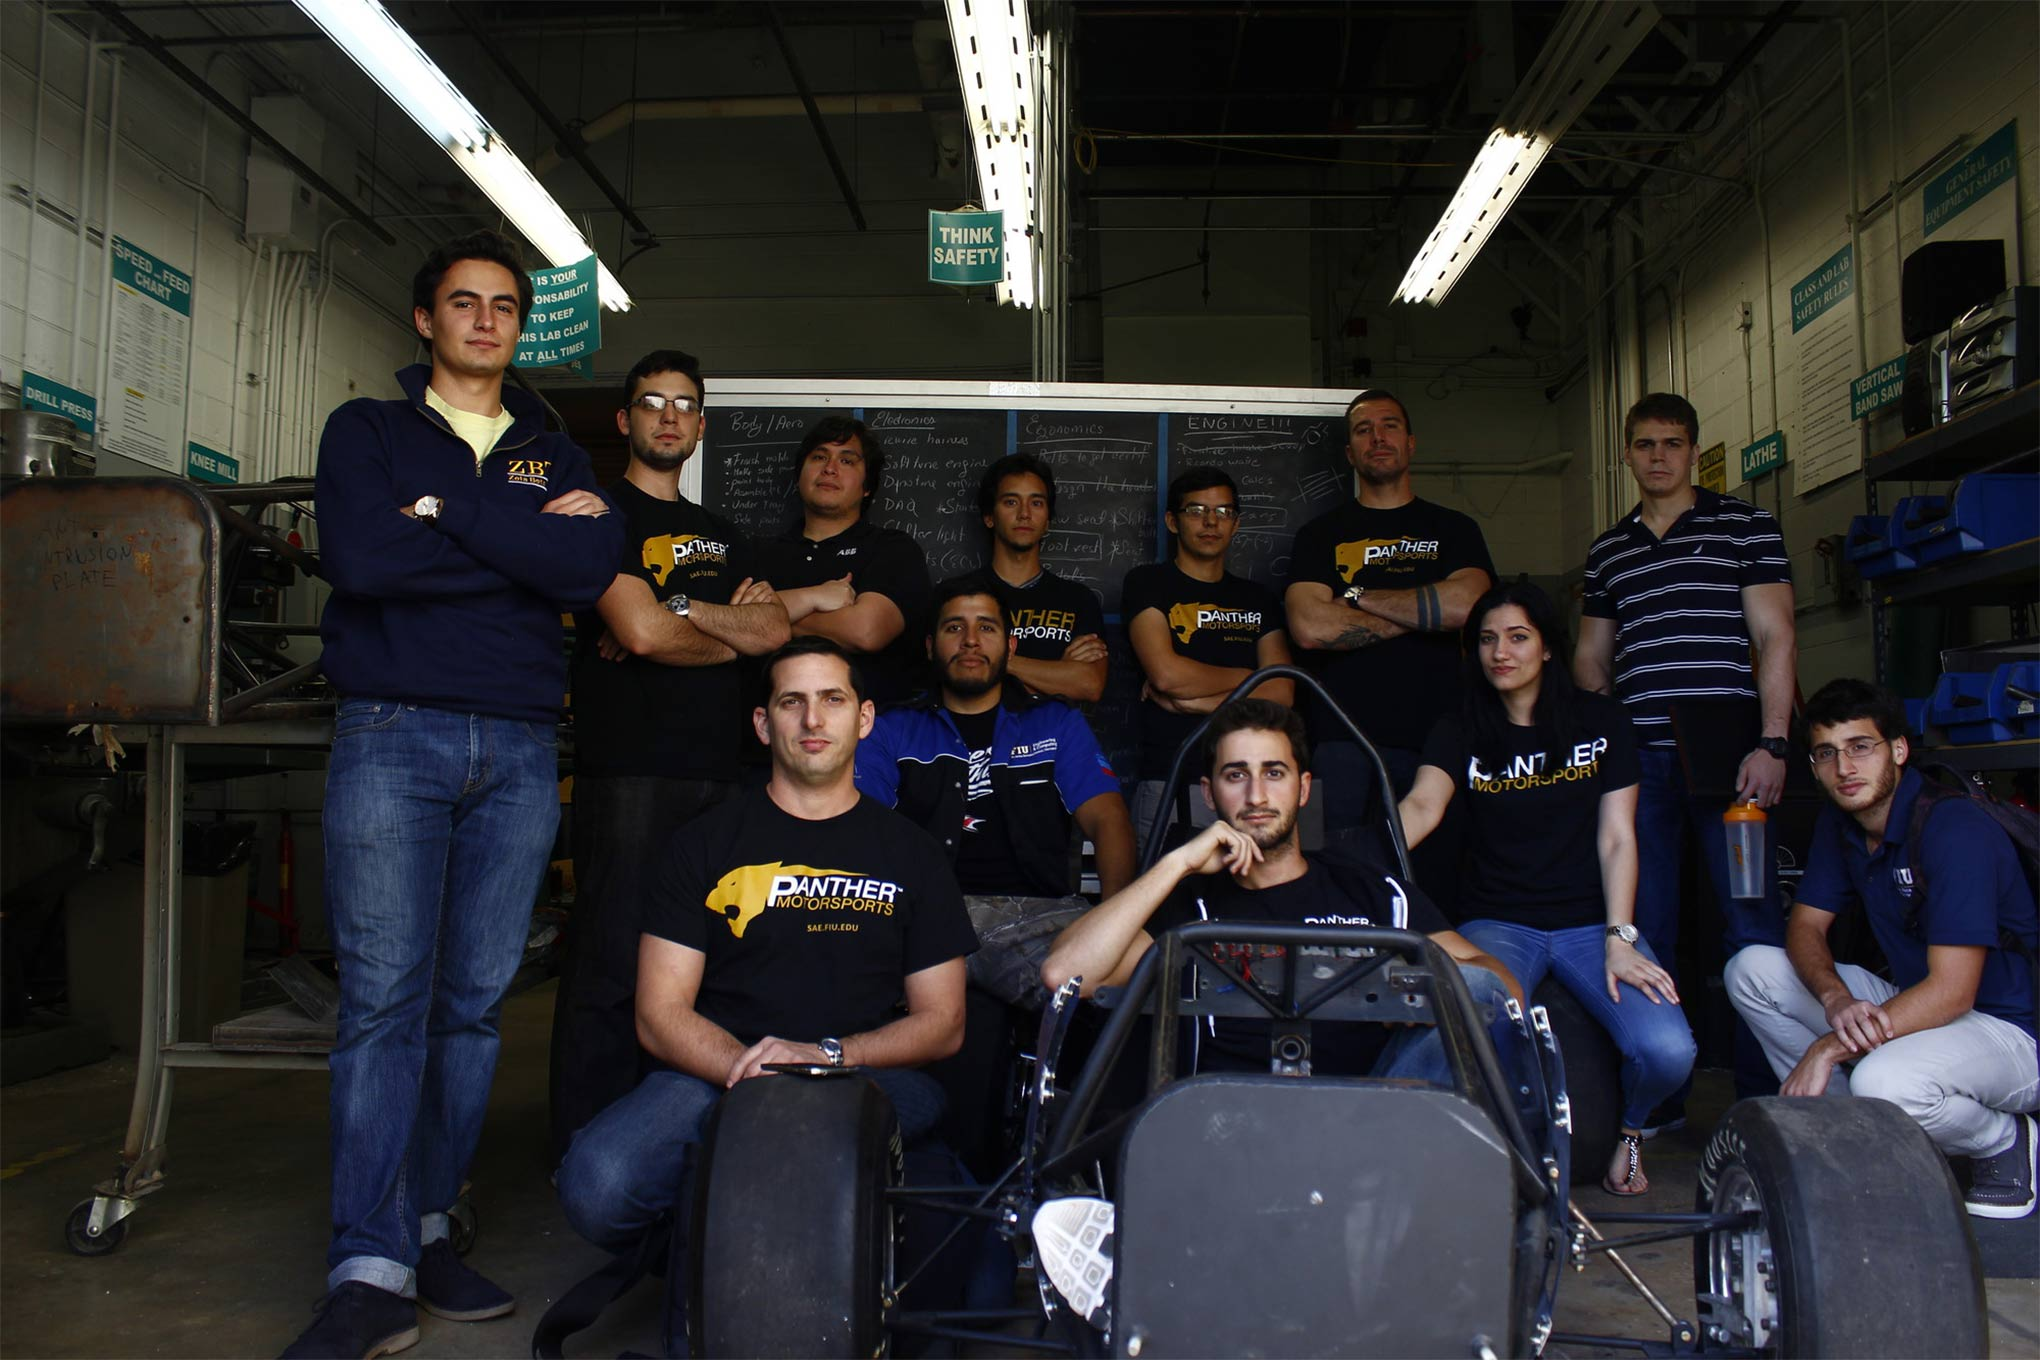 The FIU team, from left to right, starting at the back row: Juan Carrizosa, Hector Trujillo, Jose Tormo, Brian Garcia, Juan Trujillo, Juan Acosta, and Ryan Sheffield. Seated: Alain Fagundo, Luis Rojas, Victor Raymond (in the driver seat), Yussimil Libera, and Jorge Coria.